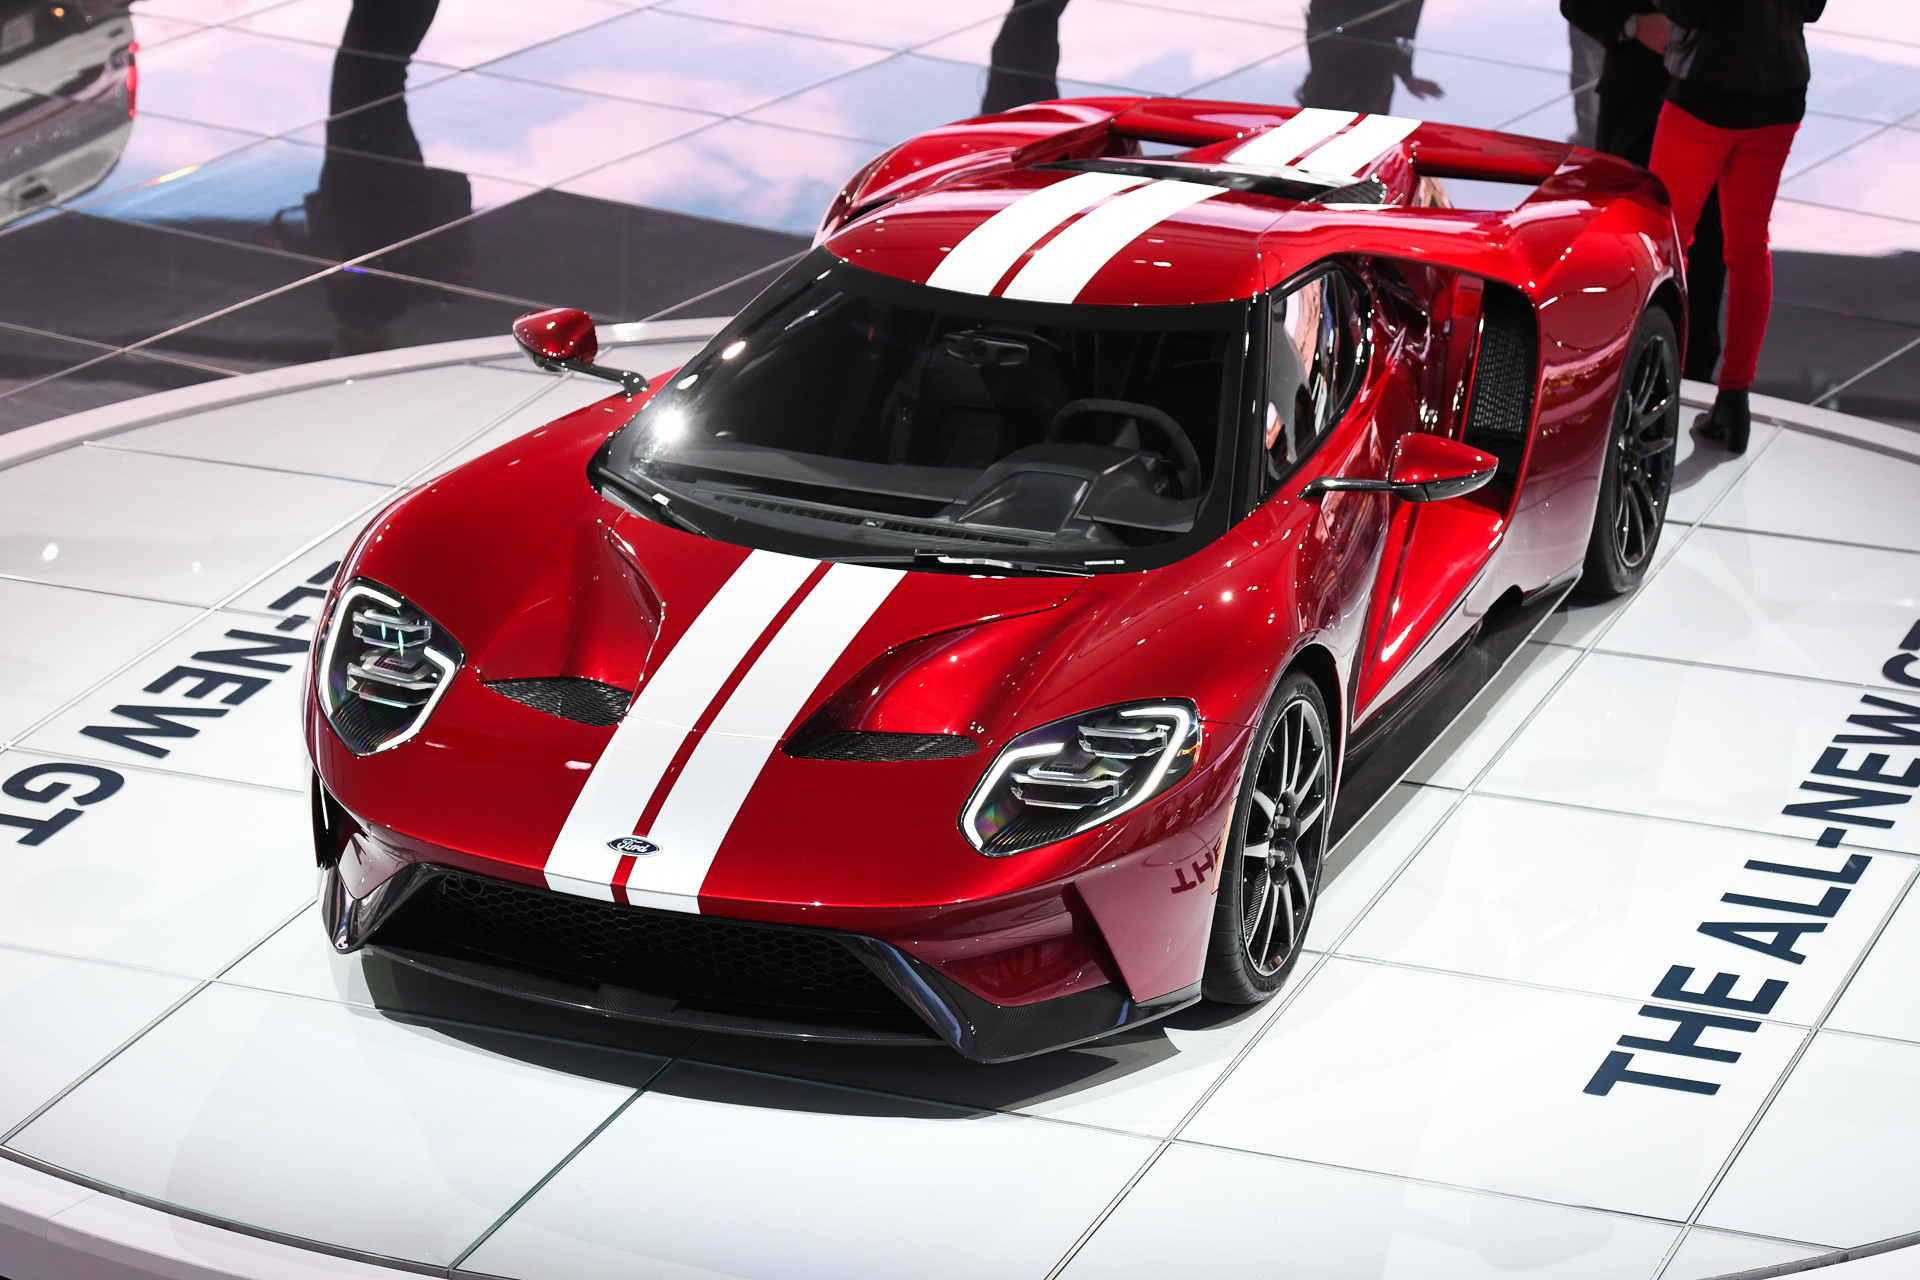 2017 Ford Gt Confirmed With 647 Hp 216 Mph Top Speed